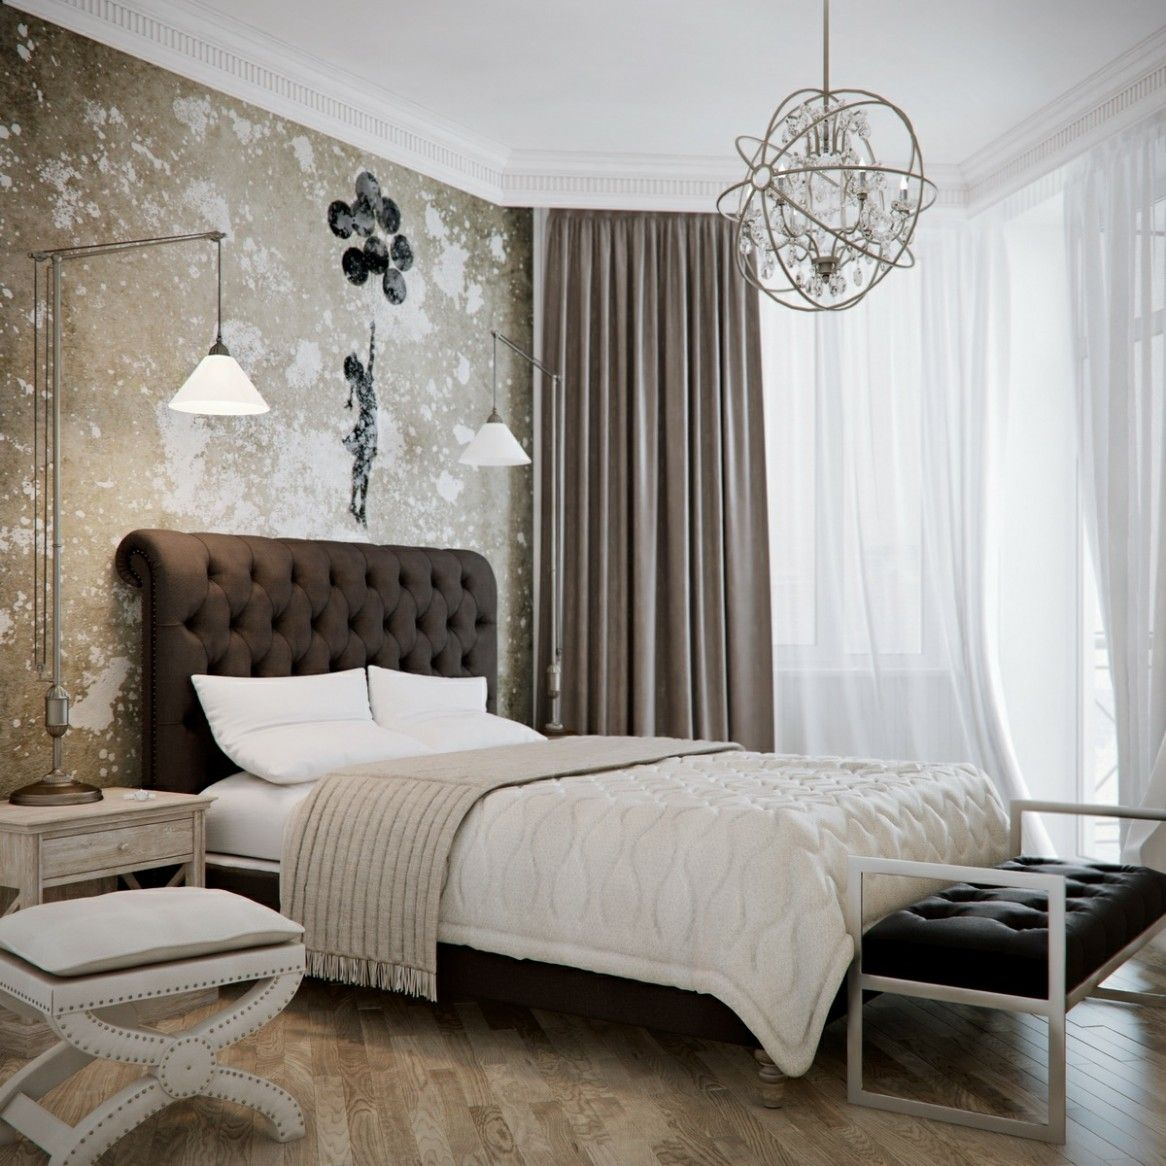 Beautiful master bedrooms tumblr - Bedroom Tumblr Bedroom Design With Cool Chandelier And Black Bed